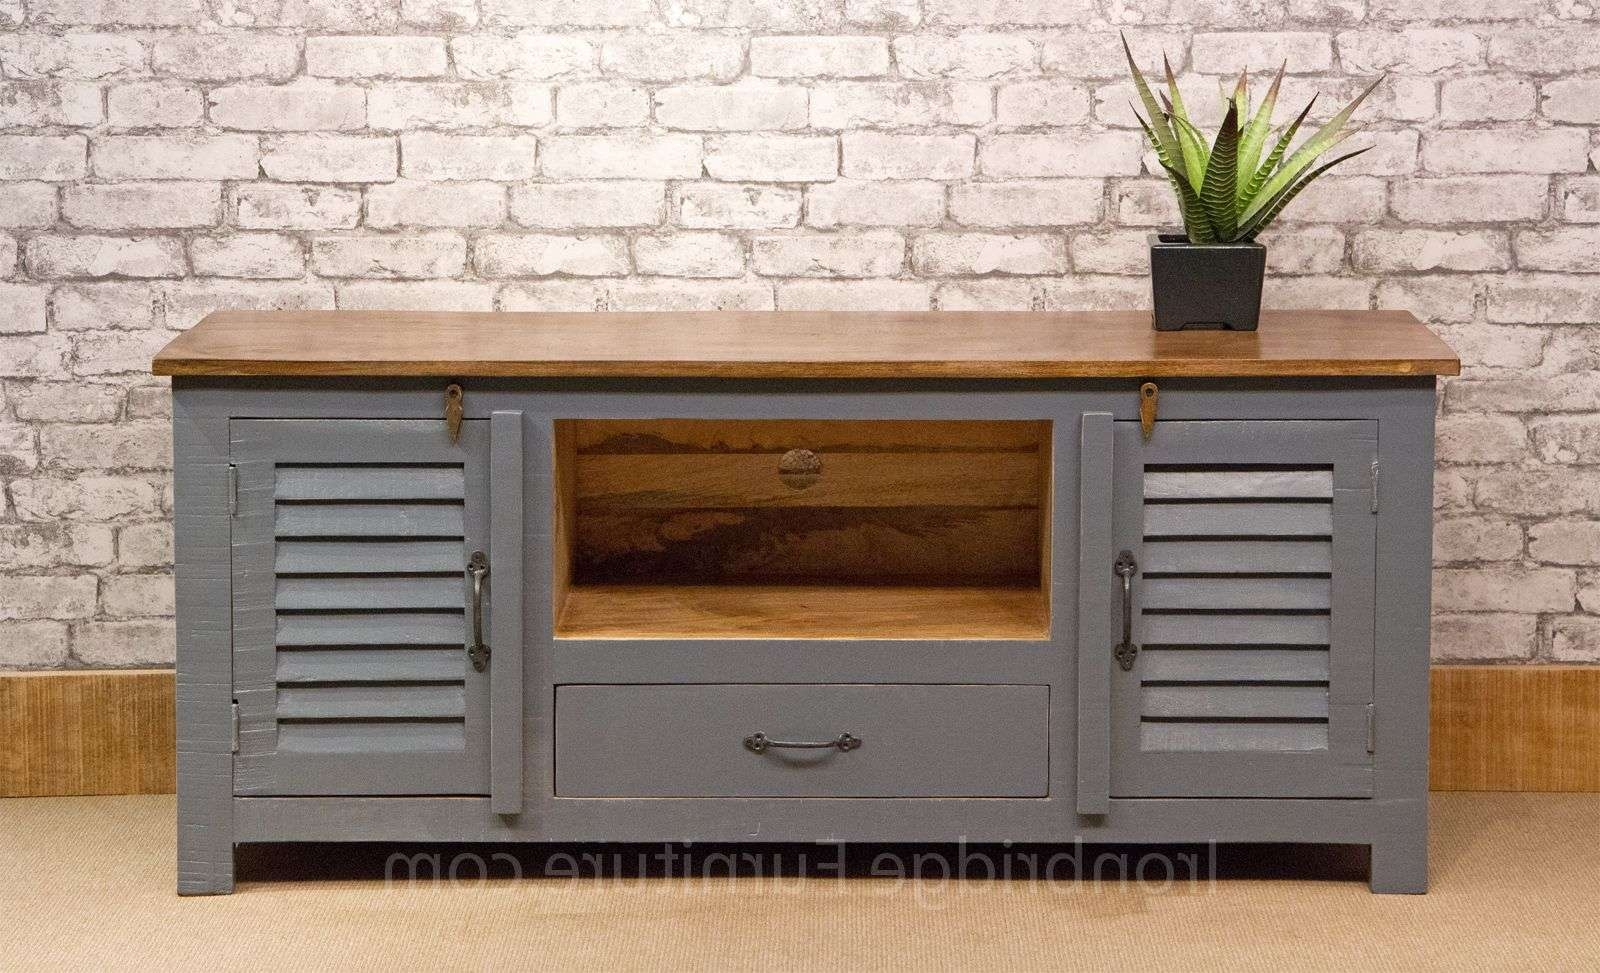 518 Vintage Style Painted Long Tv Cabinet – Dusky Grey In Vintage Style Tv Cabinets (View 1 of 20)